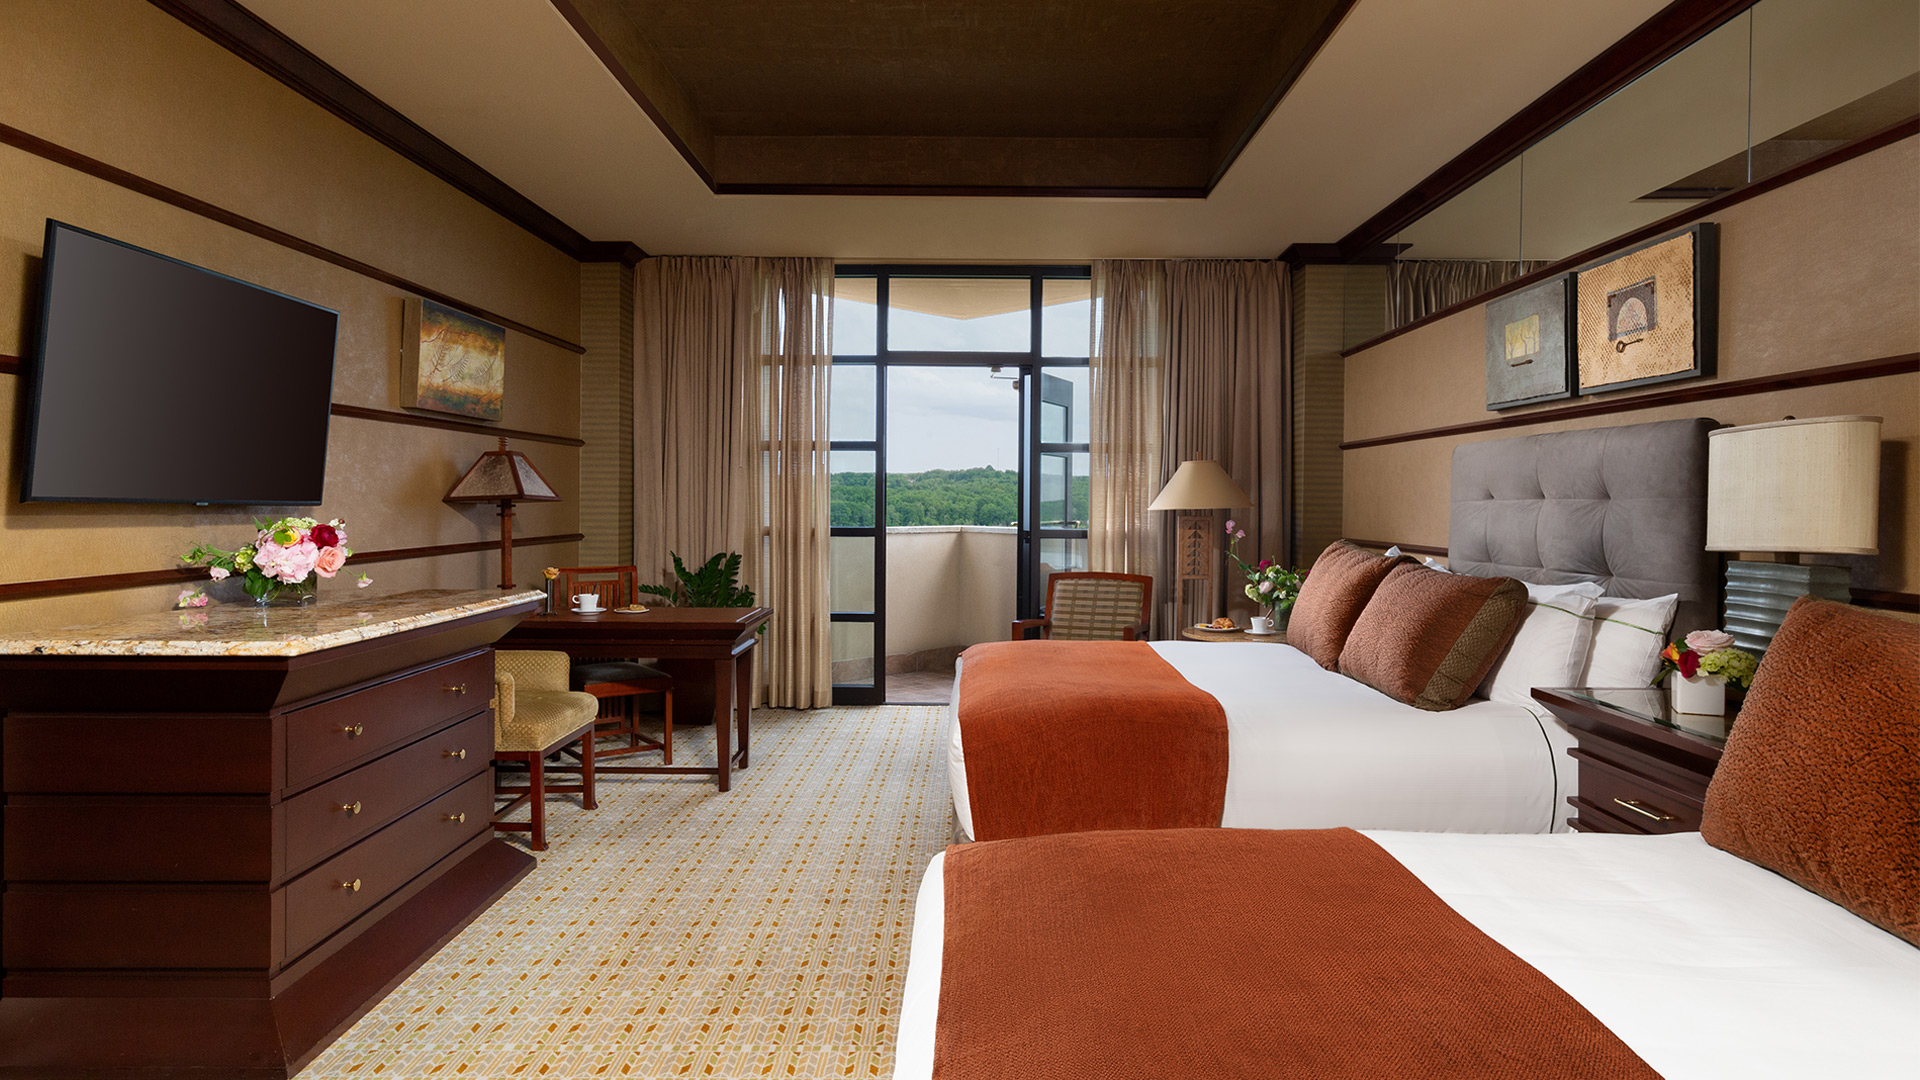 interior shot of Falling Rock's balcony double room. There are two king beds with plush headboards and white, burnt orange and brown bedding. There is a sitting area and a dresser with a flatscreen TV mounted above it. There are doors that lead to a balcony overlooking the resort grounds.